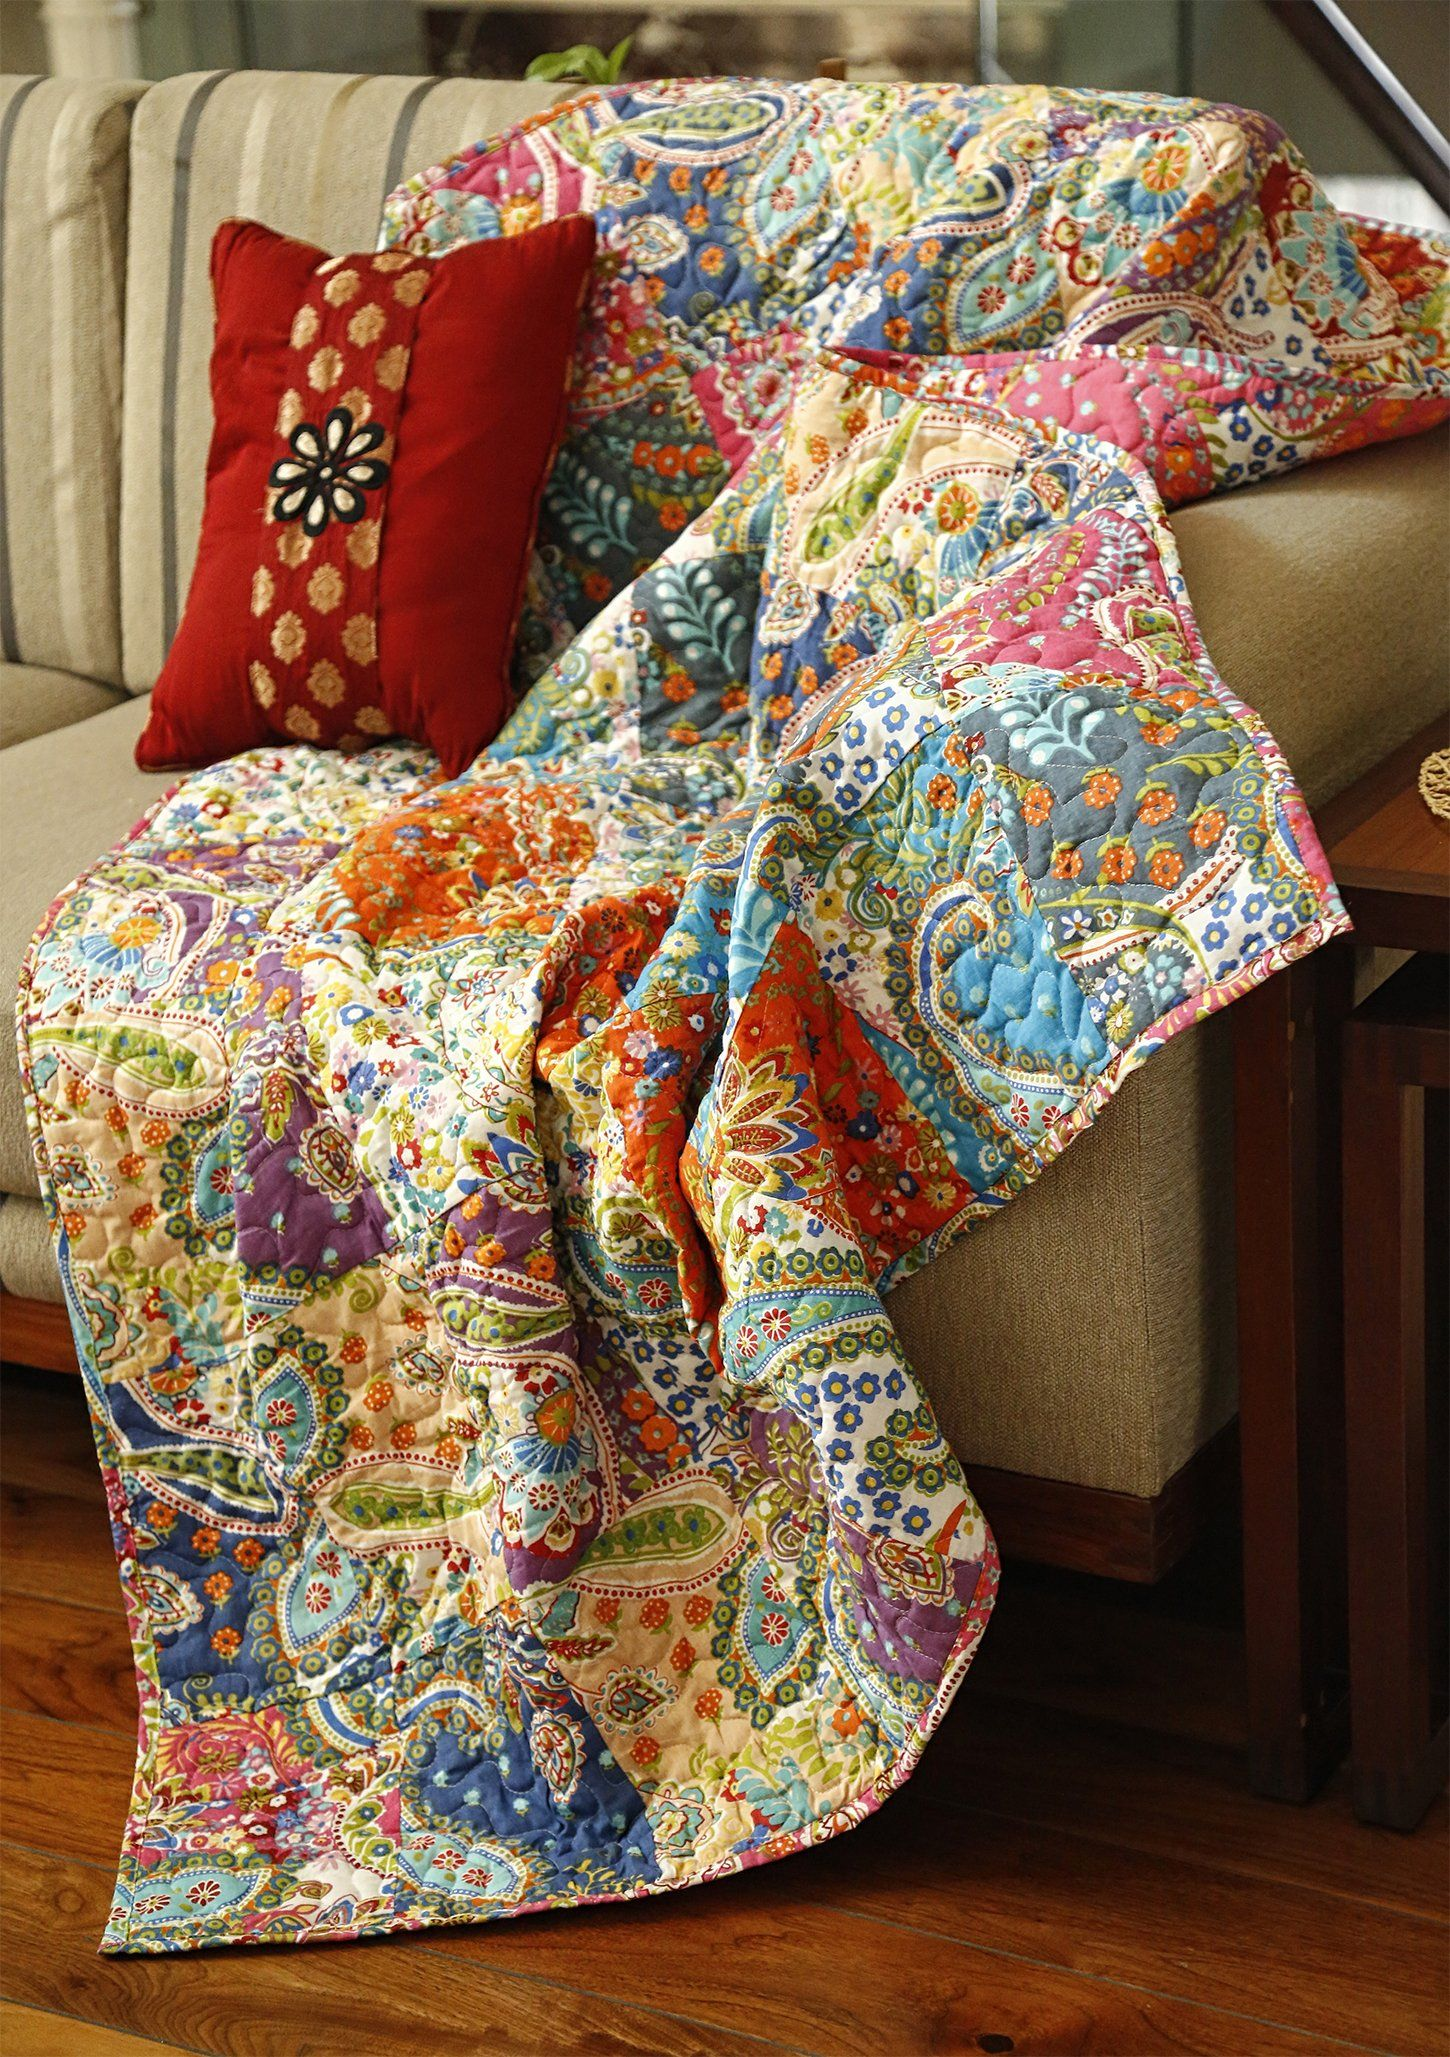 Decorative Sofa Throws Blankets Rajrang Multicolor Patchwork Quilt Vintage Indian Reversible